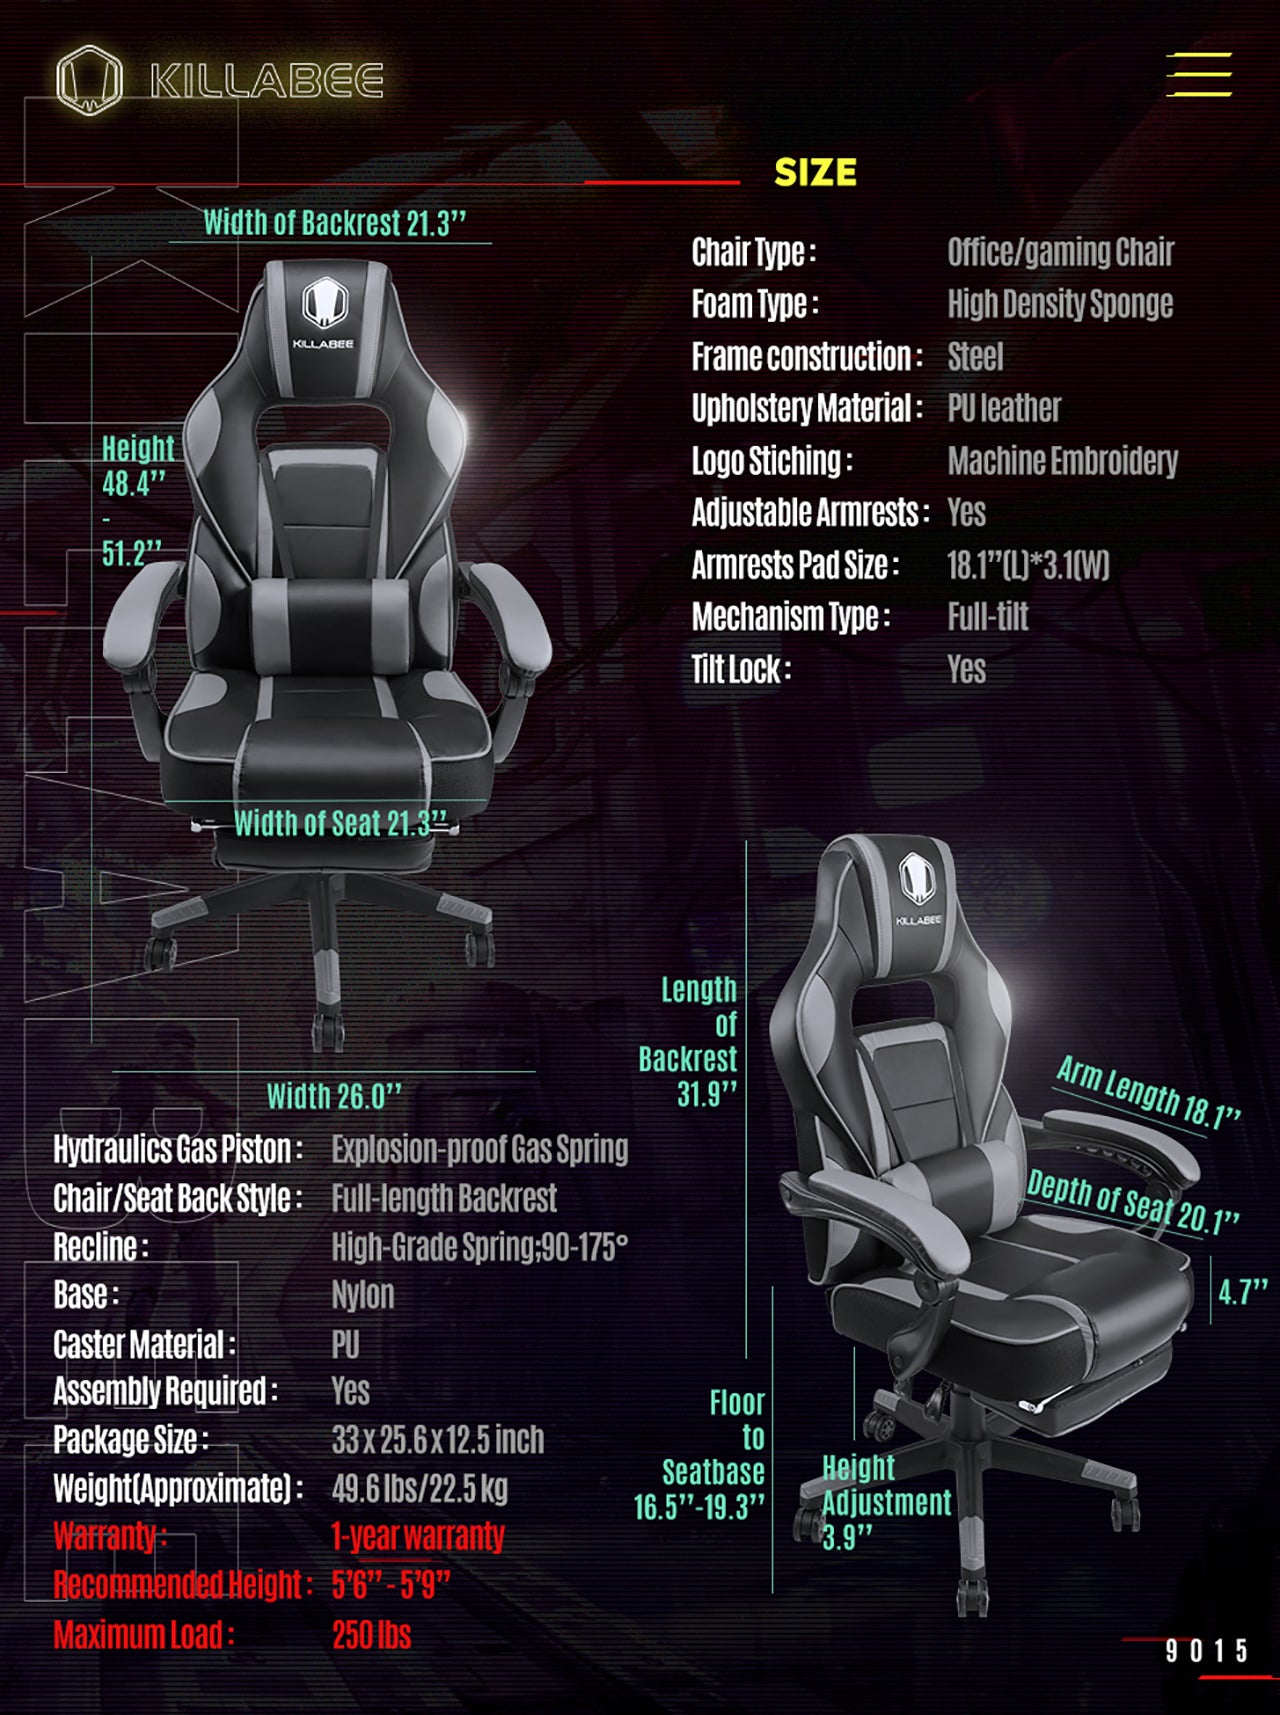 KILLABEE MASSAGE GAMING CHAIR 9015 GRAY SPECIFICATION